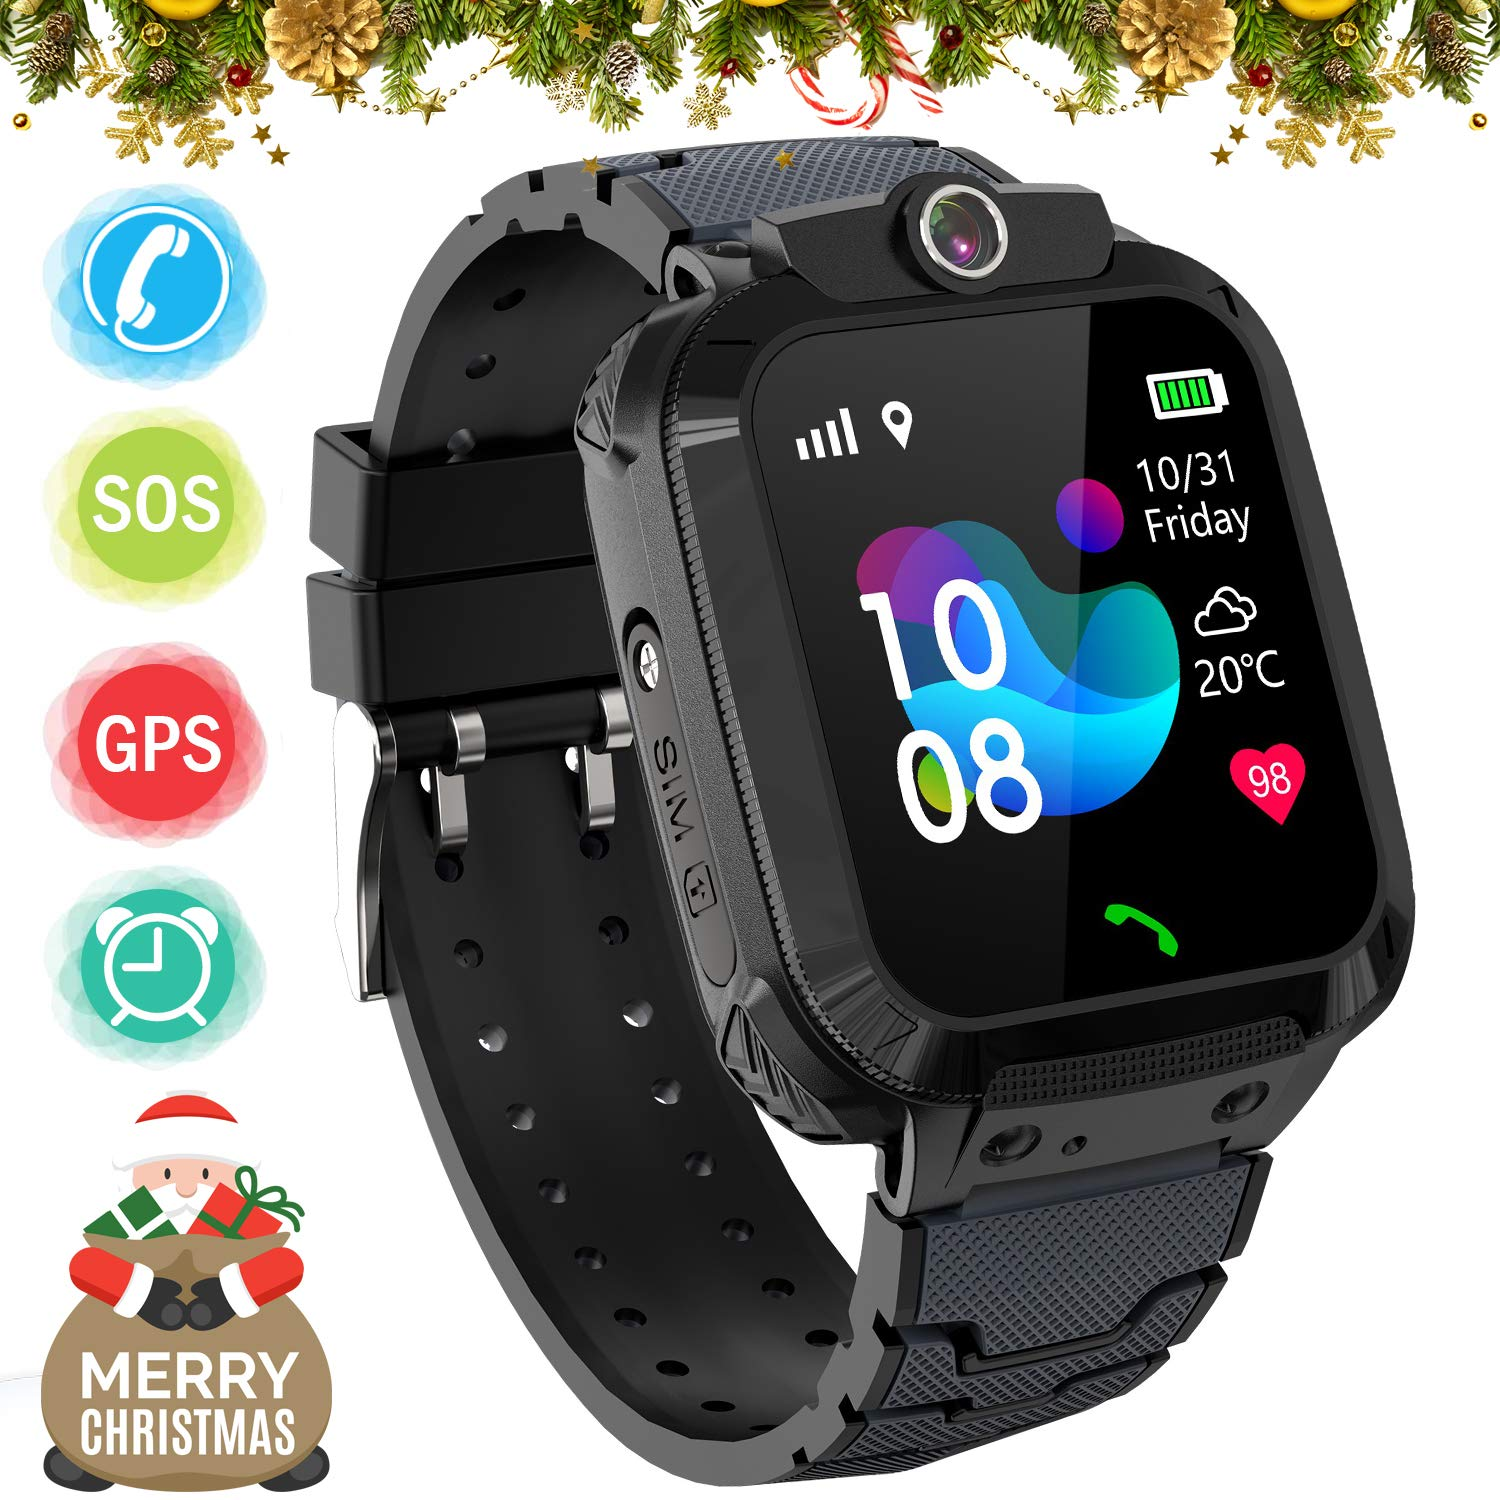 Kids GPS Smart Watch Phone for Boys Girls – Waterproof GPS Locator Smartwatch Phone with 2 Ways Call Camera Voice Chat SOS Alarm Clock Game Pedometer ...